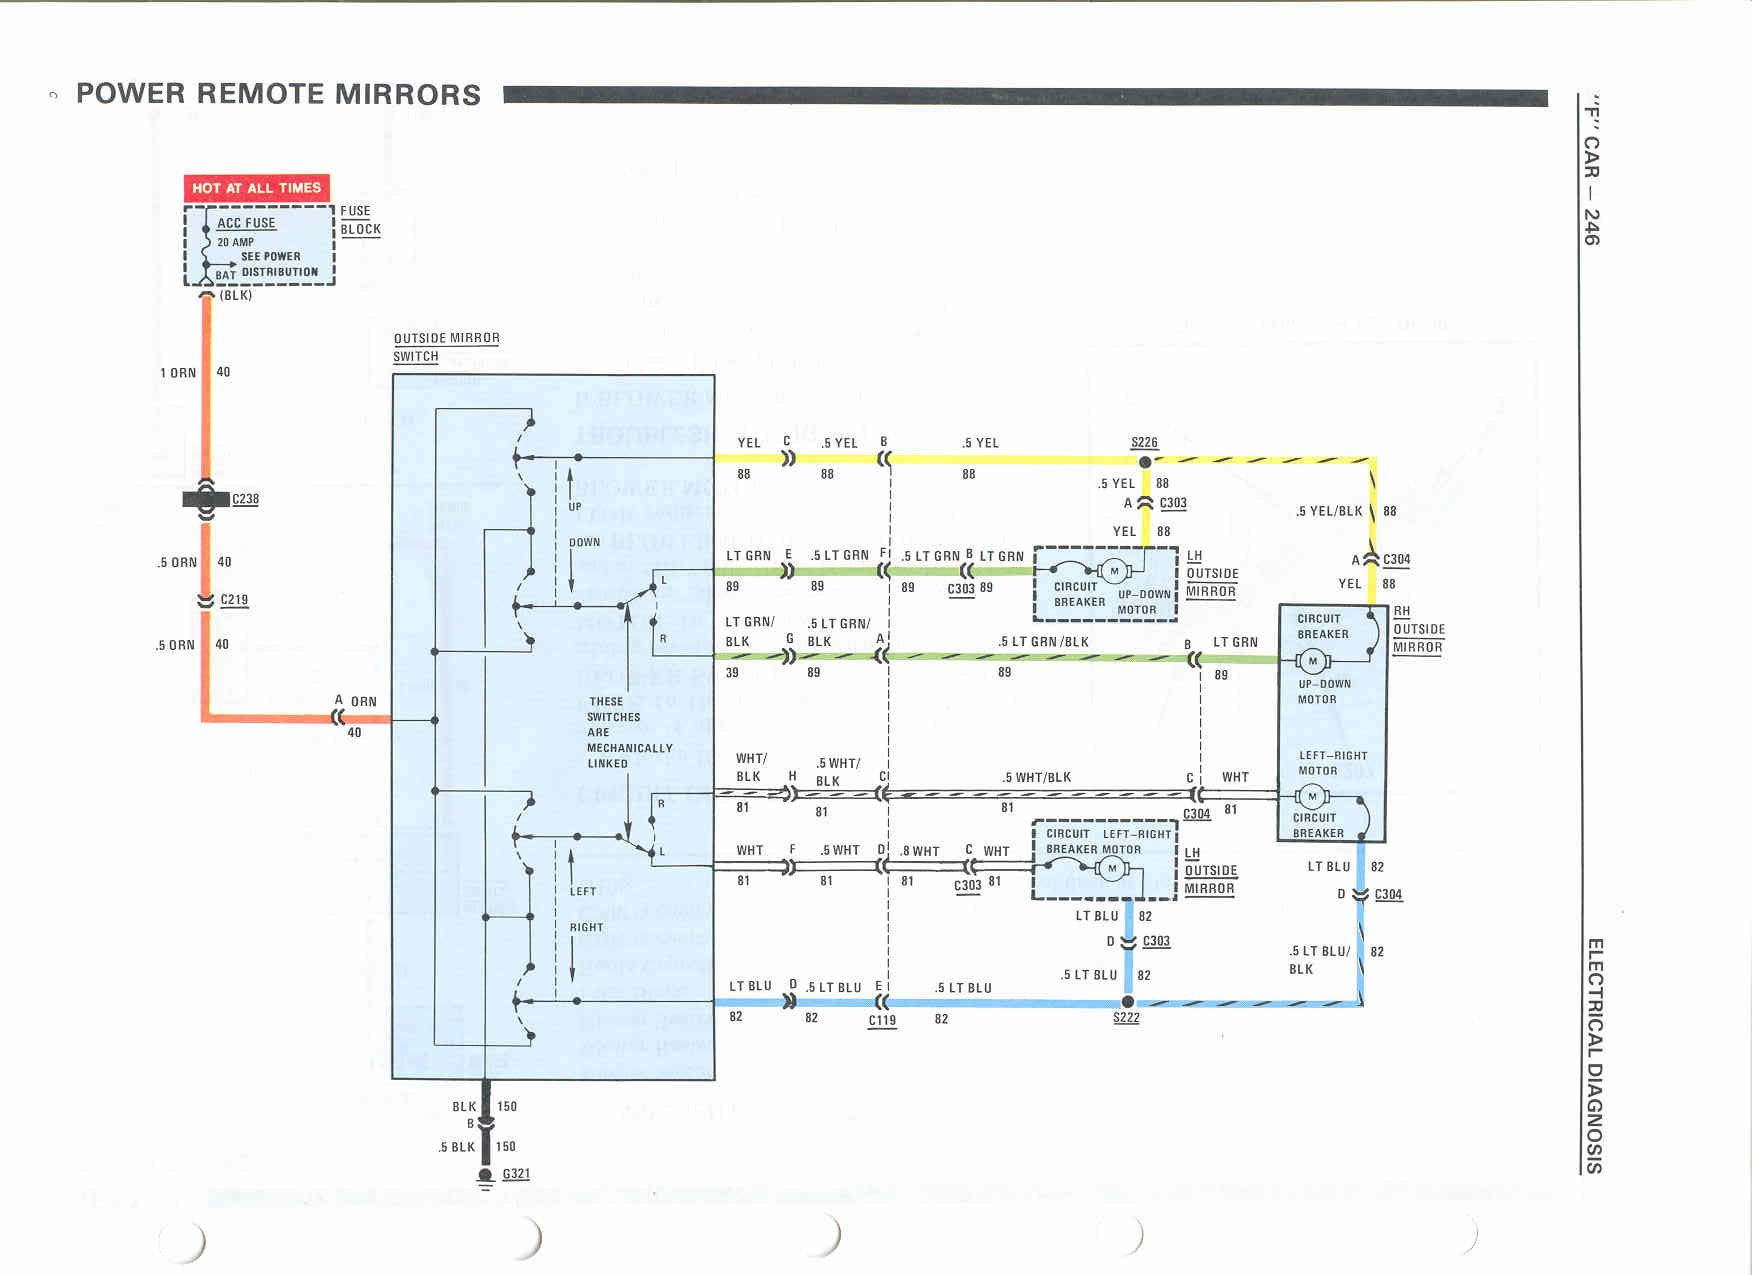 camaro berlinetta wiring diagram shop manual 85' Camaro Radio Wiring Diagram